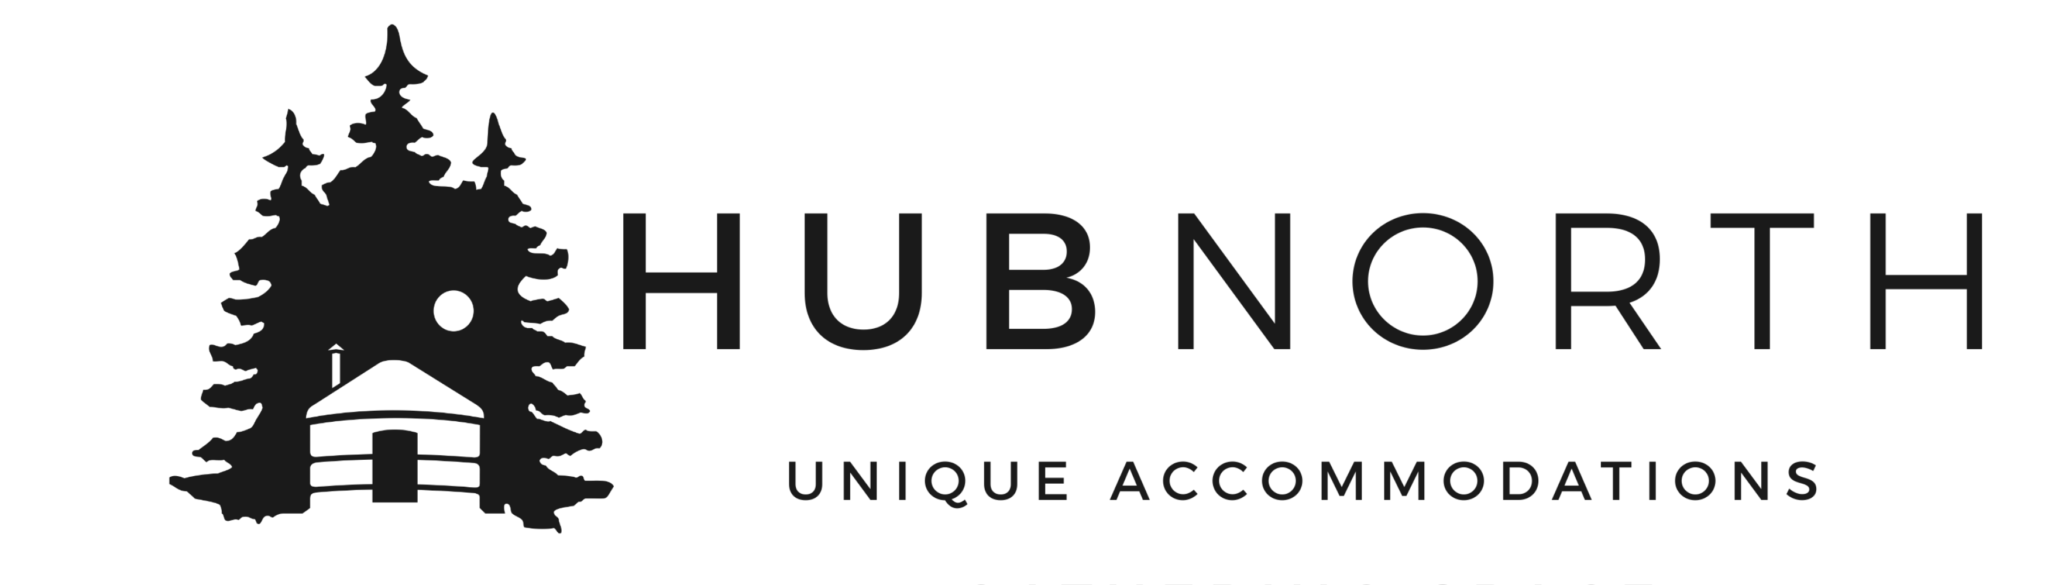 Hub North